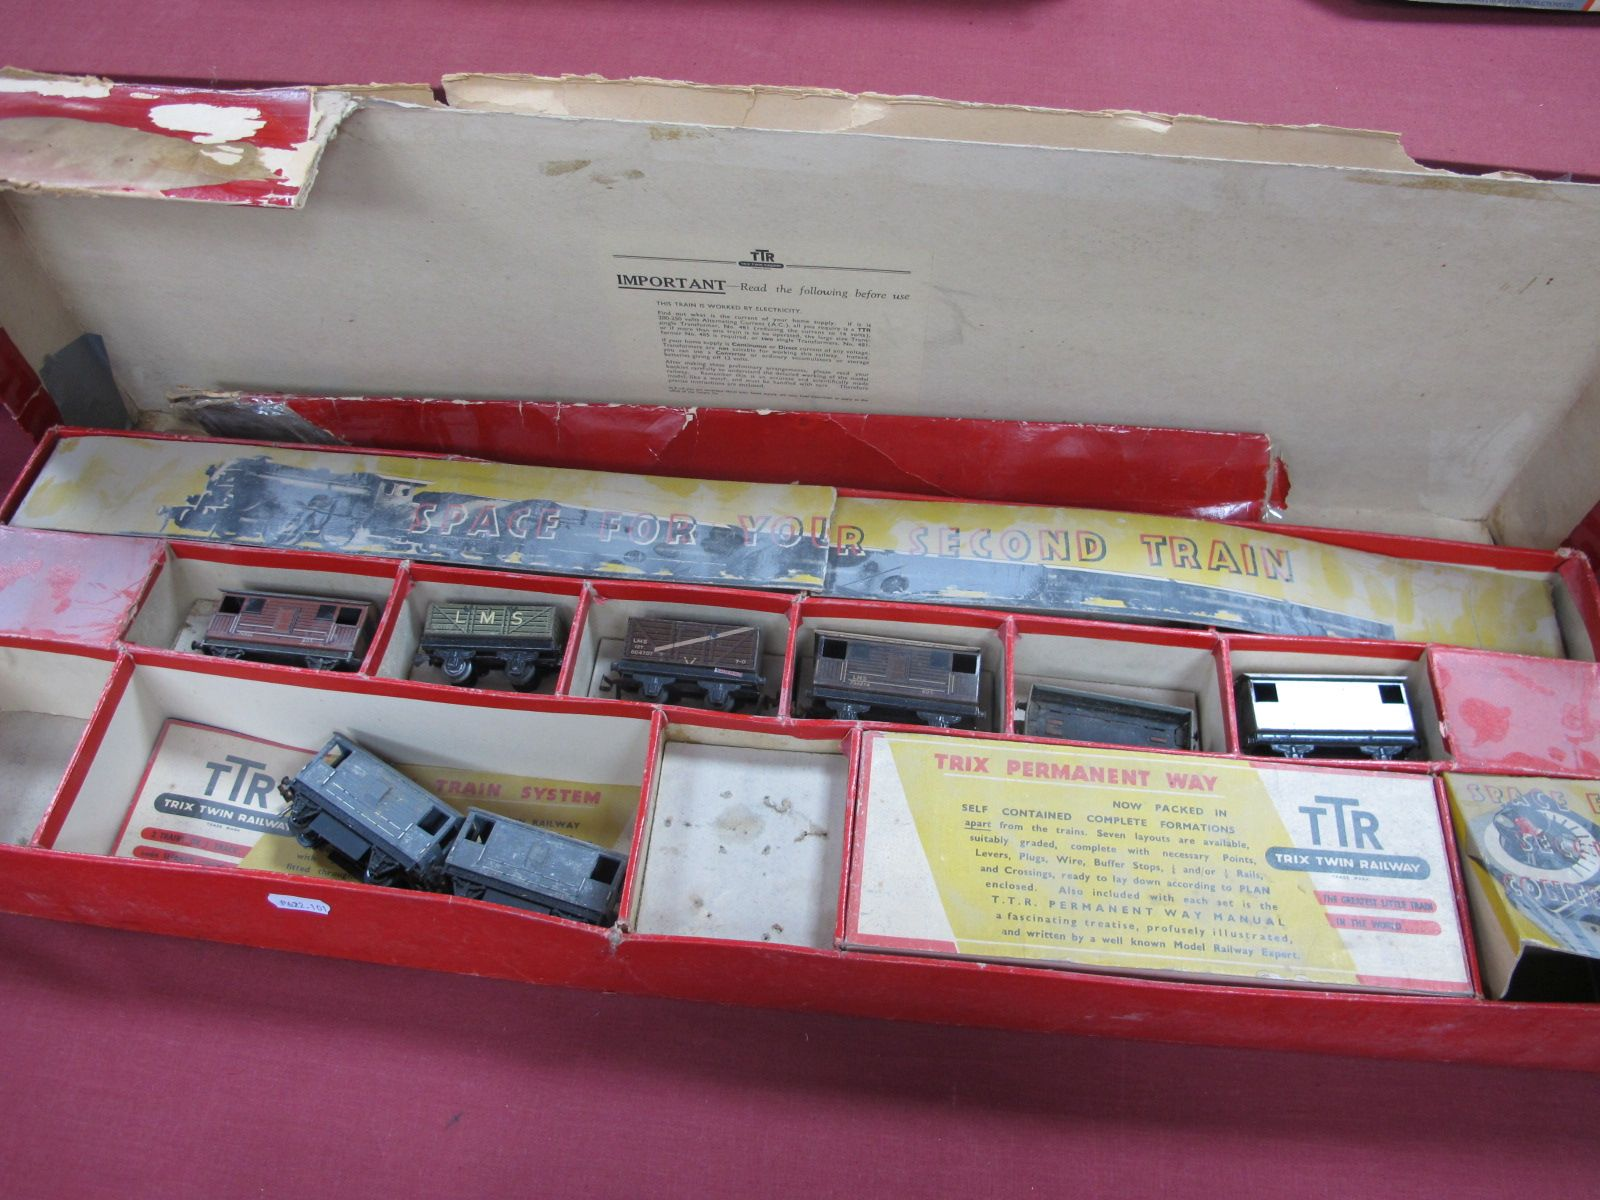 A Trix T.T.R Railway Set Ref 2/324 Goods Train Box, fair base with inserts, poor lid, contains eight